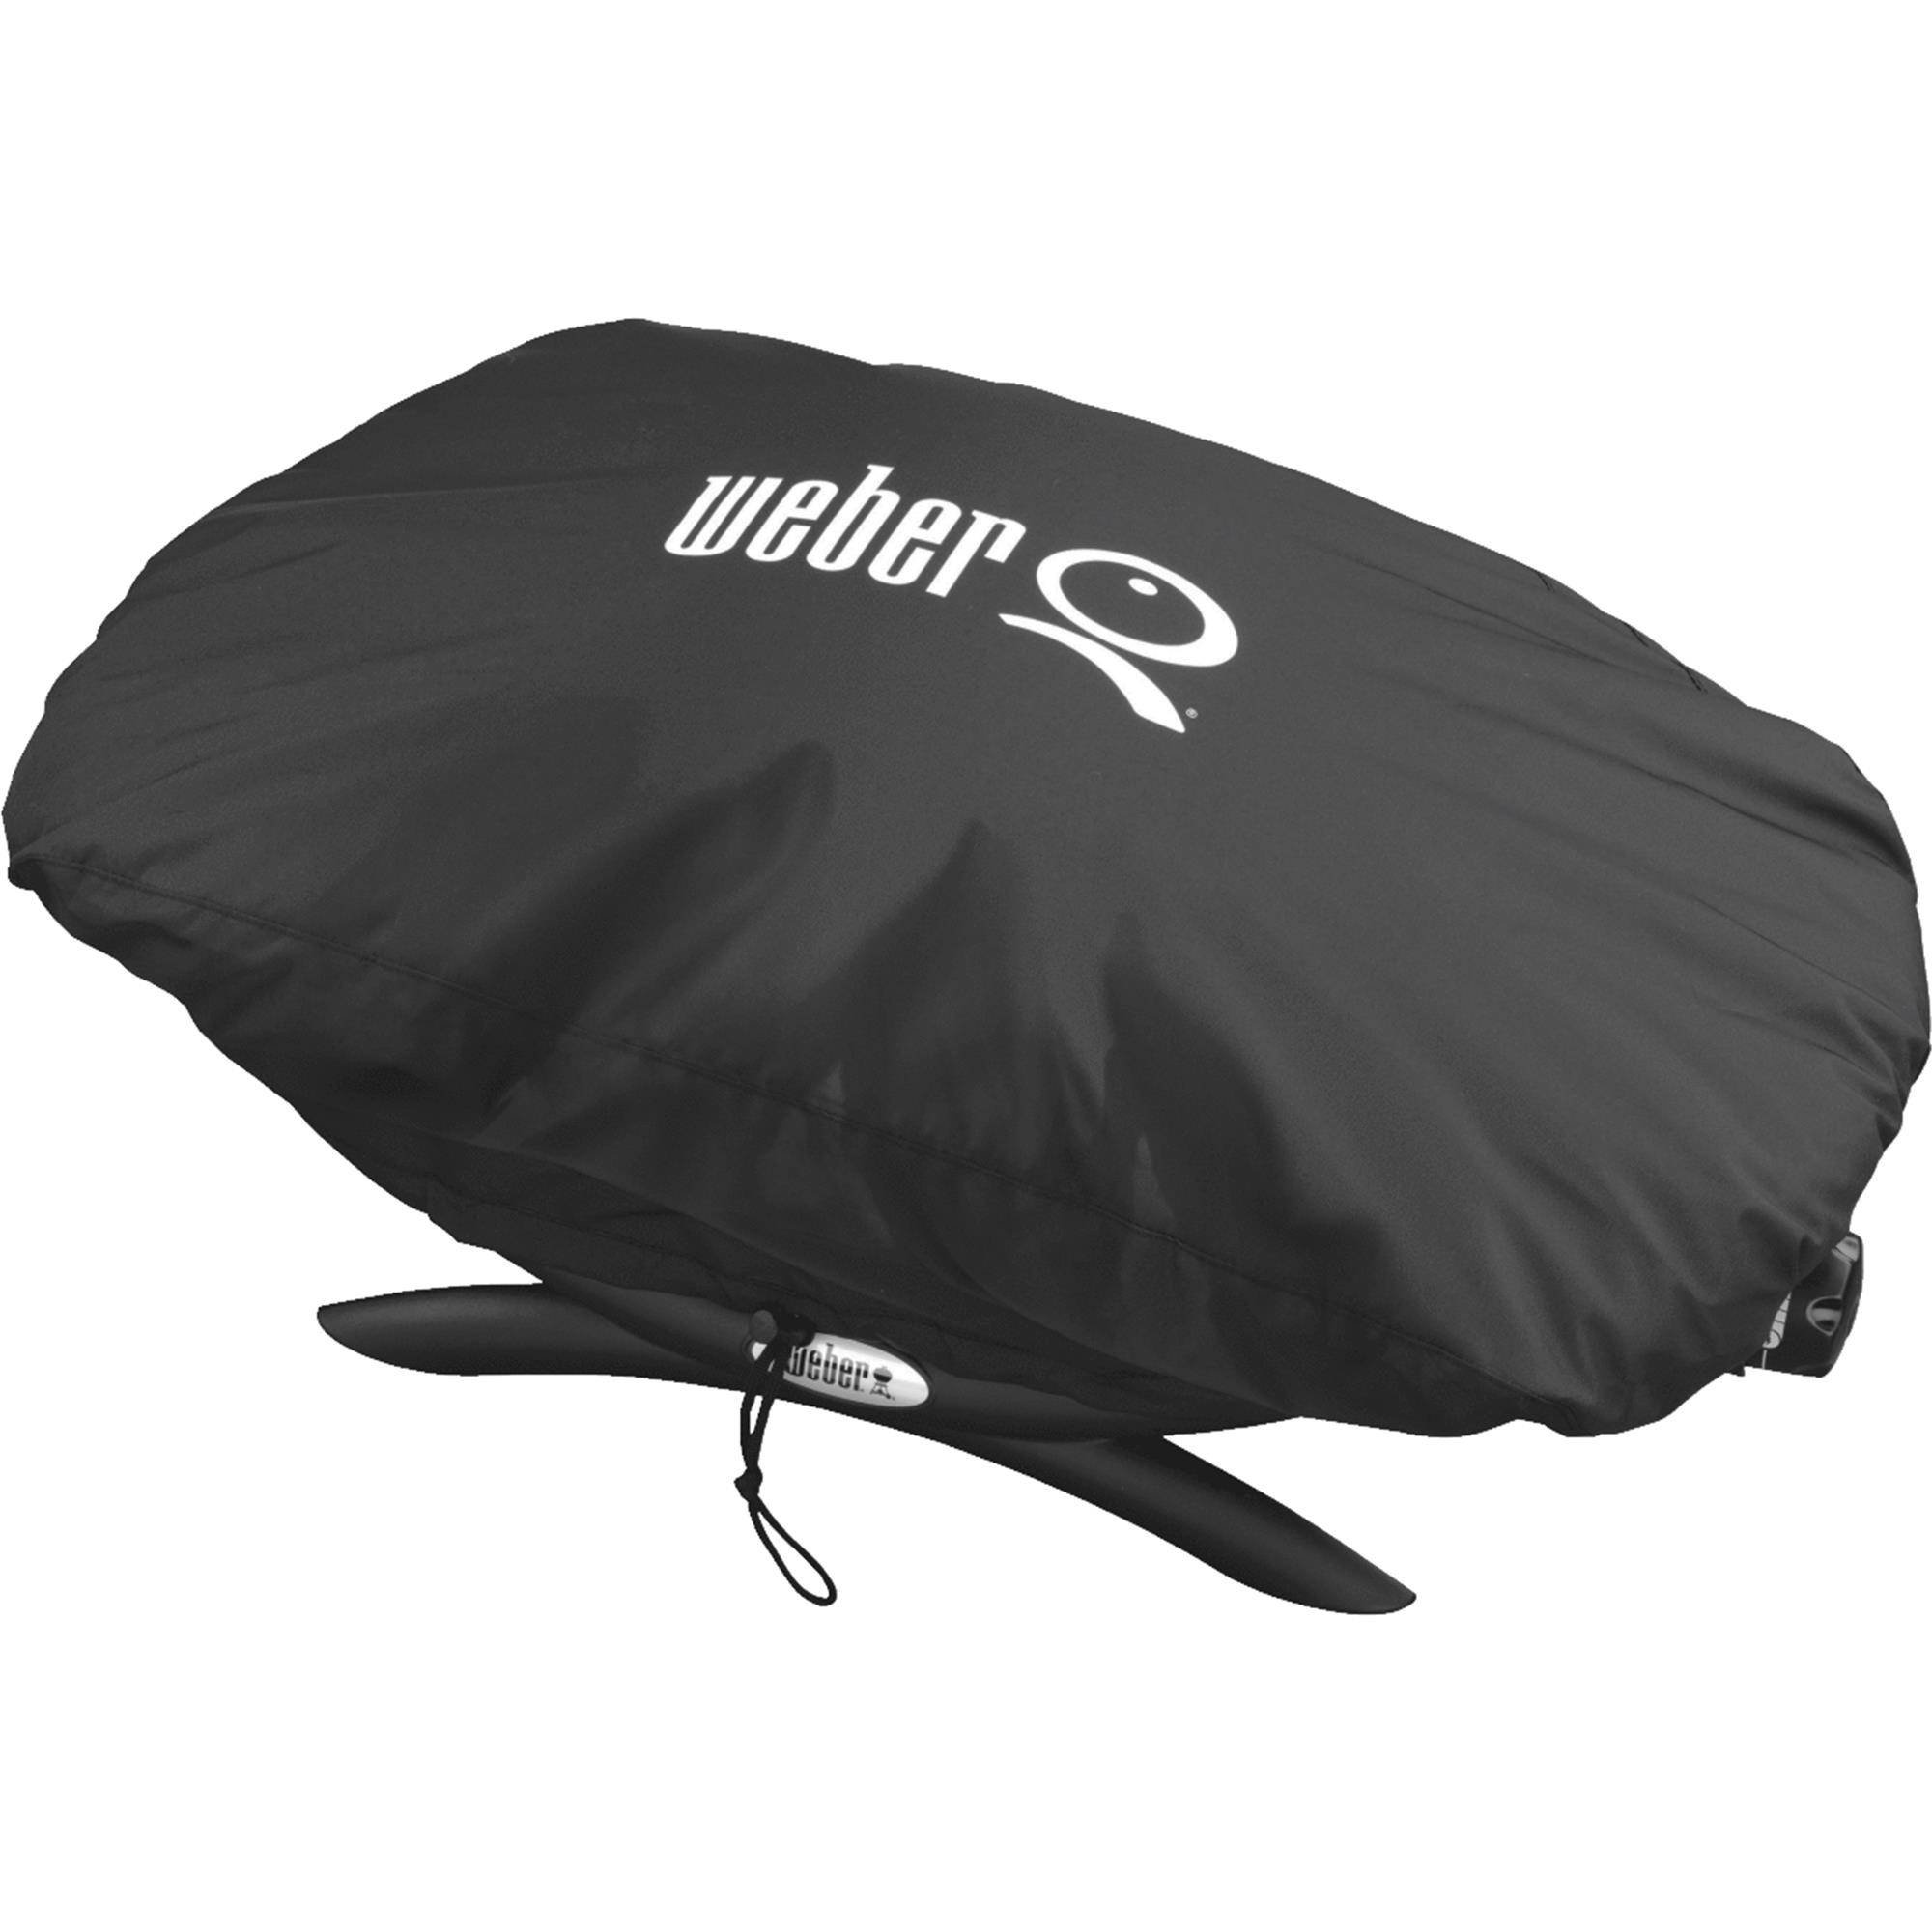 Weber Q 100/1000 27 In. Grill Cover